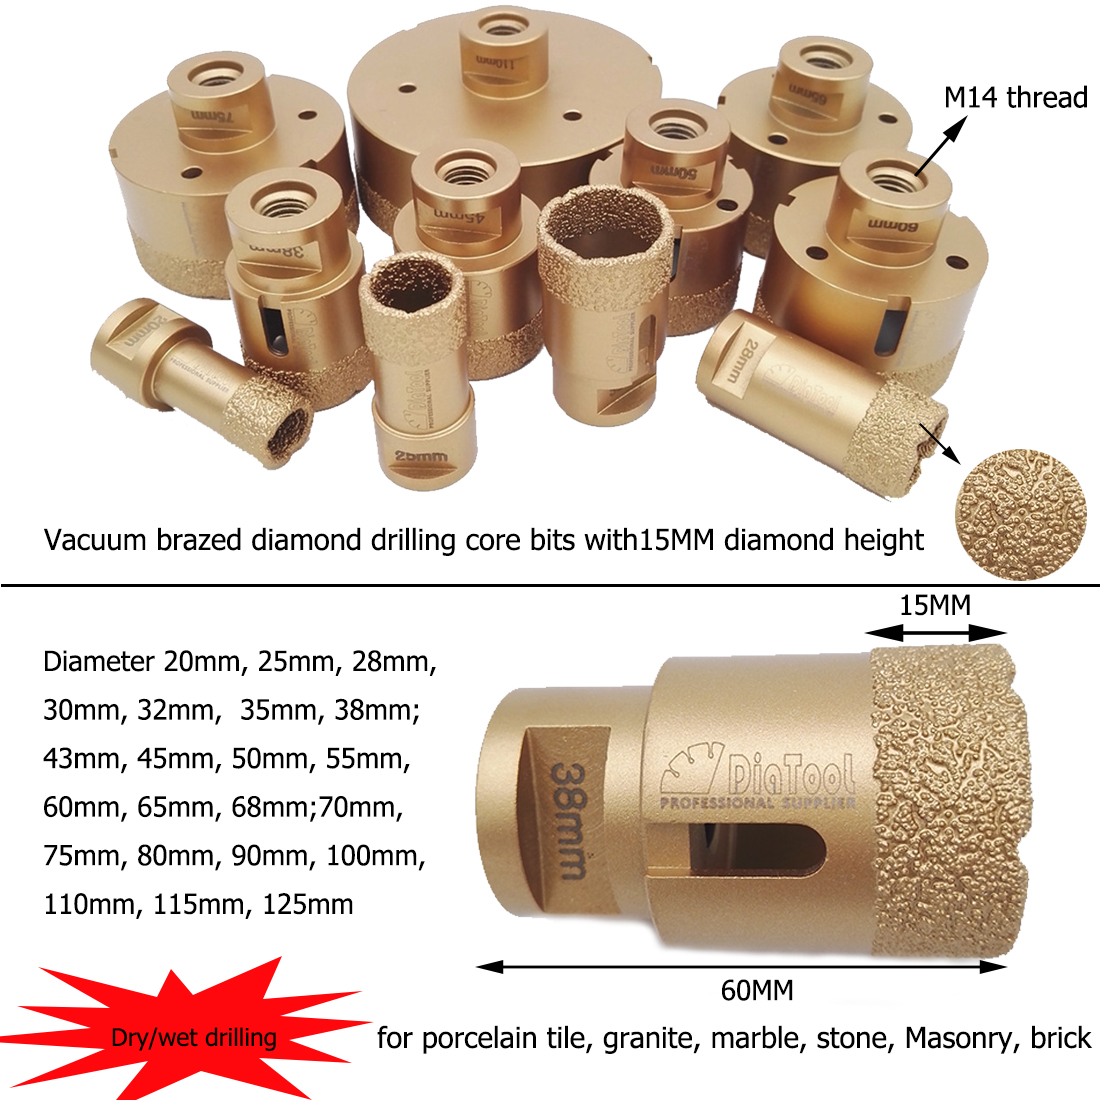 uxcell 30mm Dry//Wet Diamond Core Drill Bit for Granite Concrete Brick Block Stone Masonry